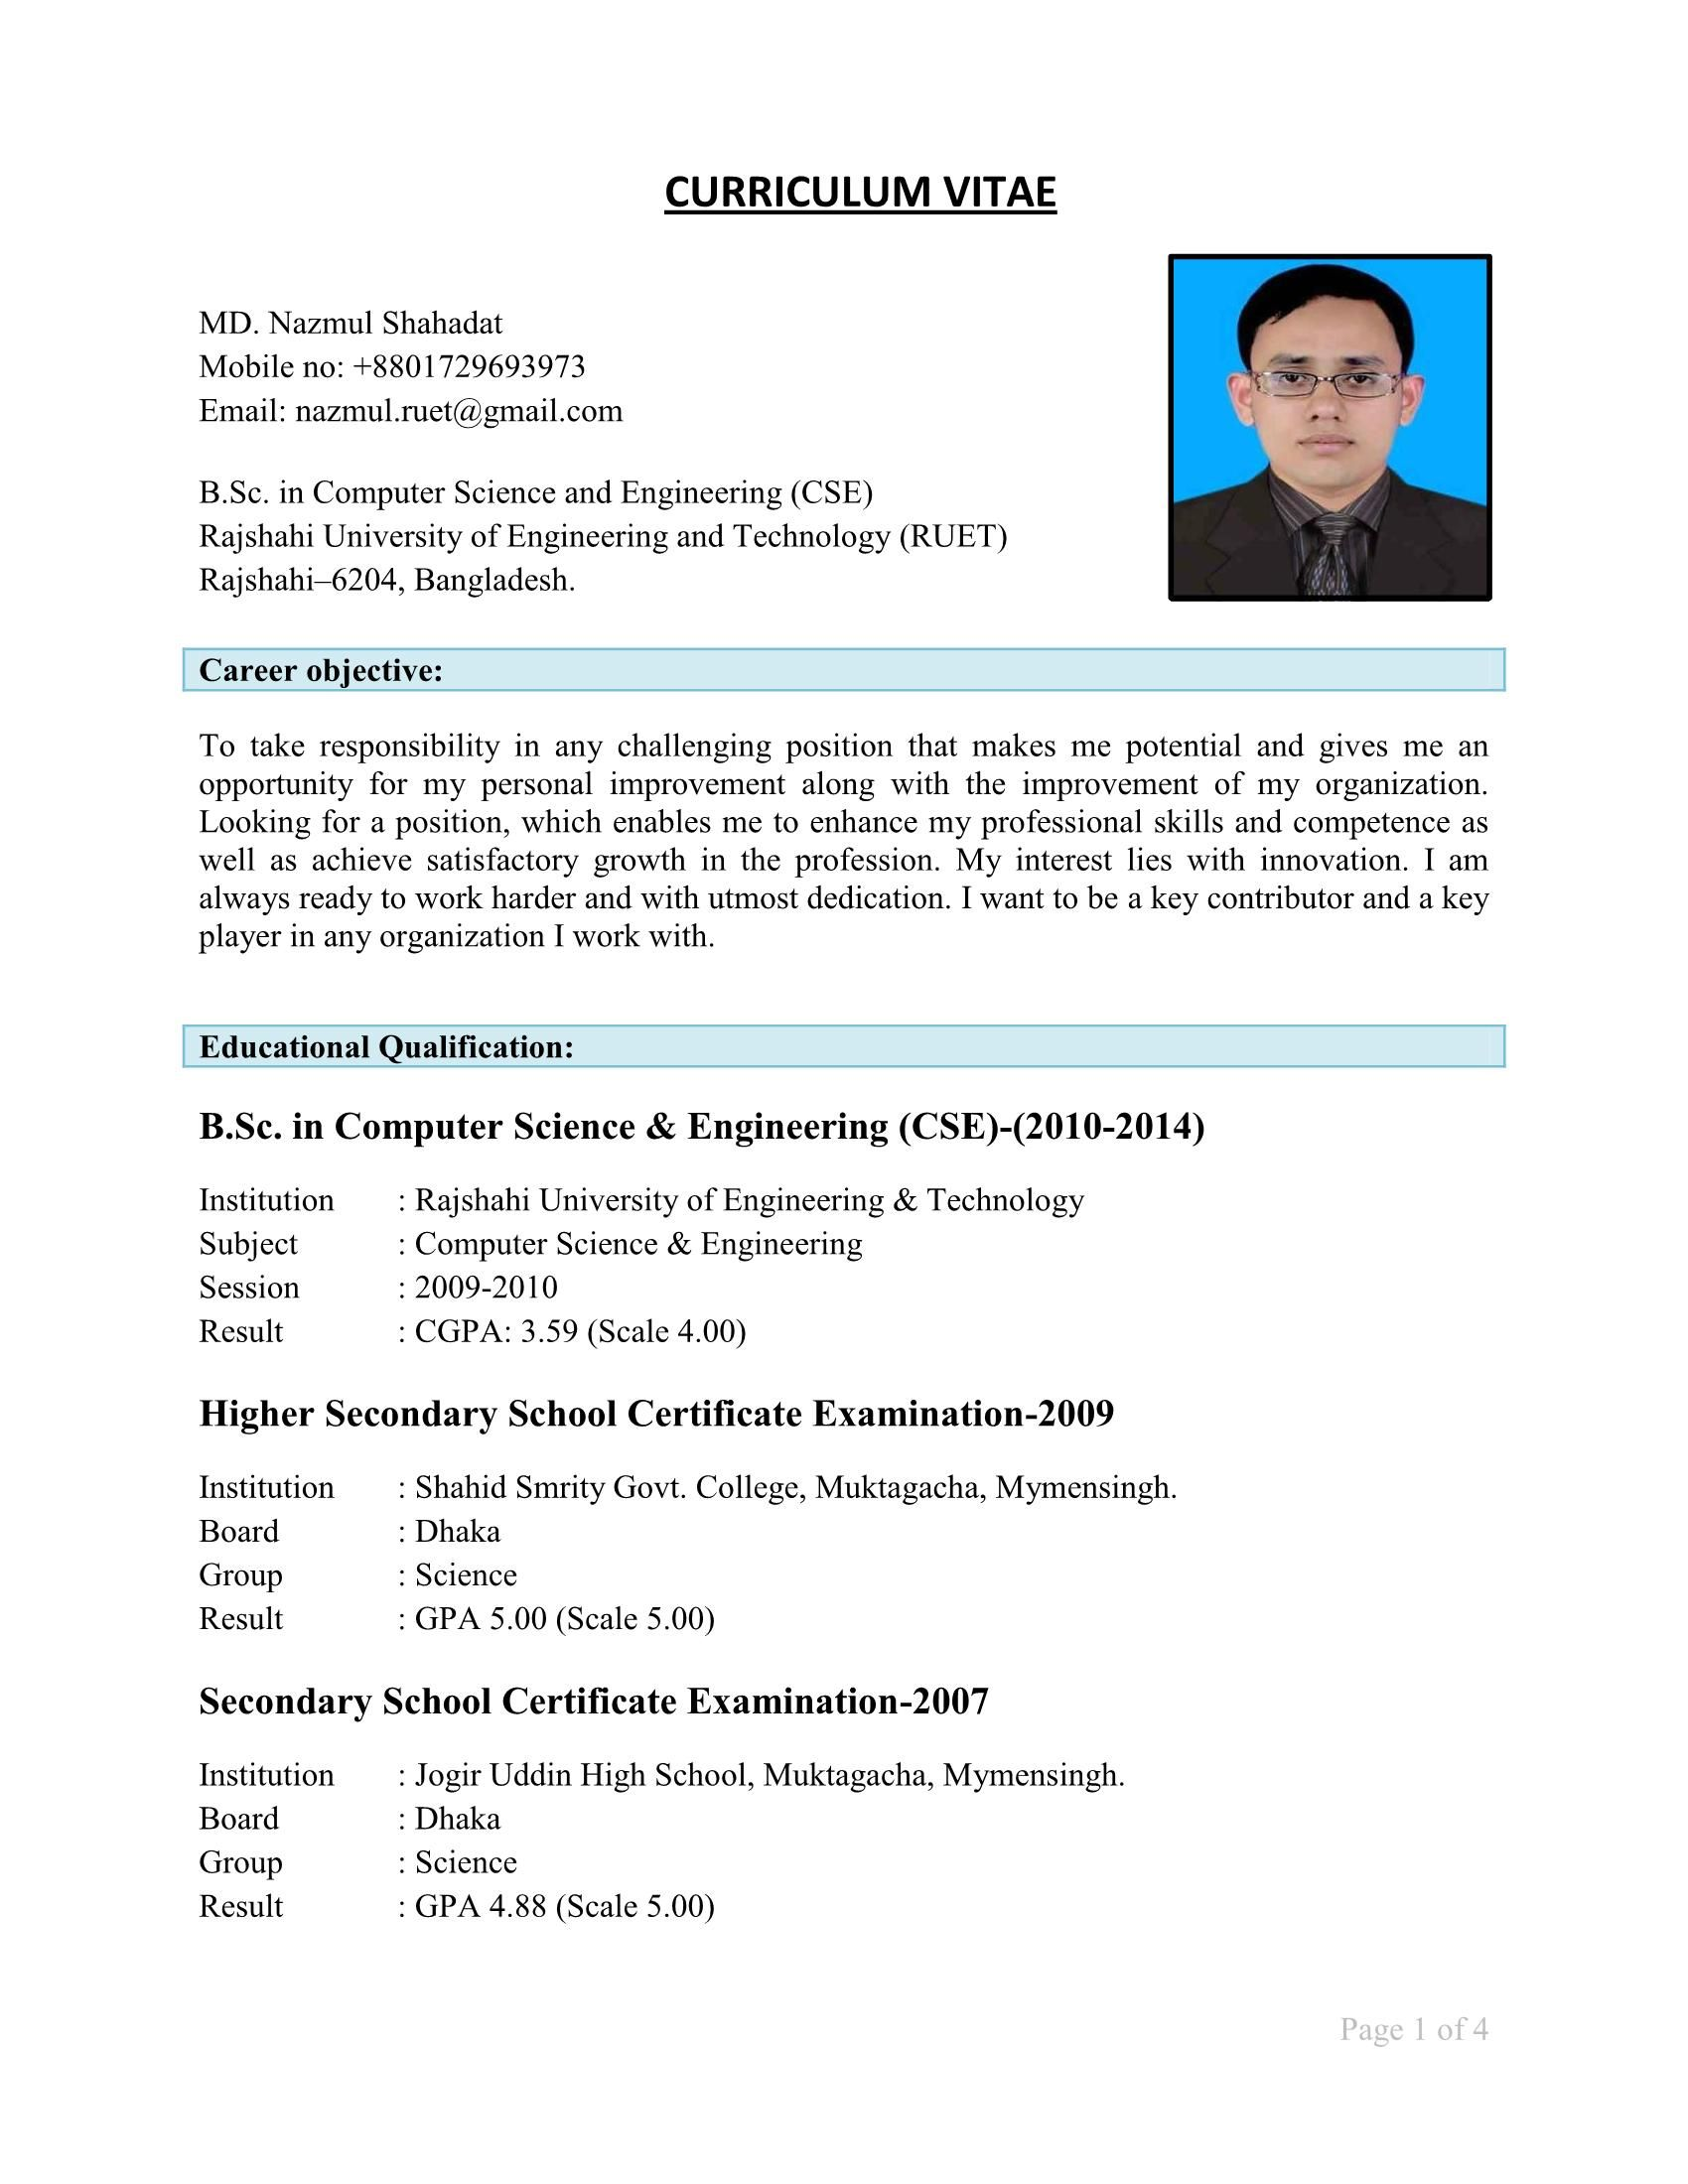 Cv Format For Bangladesh Pdf Download : format, bangladesh, download, Bangladesh, Format, Download, Resume, Sample, 15811, Easily, Personalized, Whichever, Industry, Applying, Arvilla, Frady